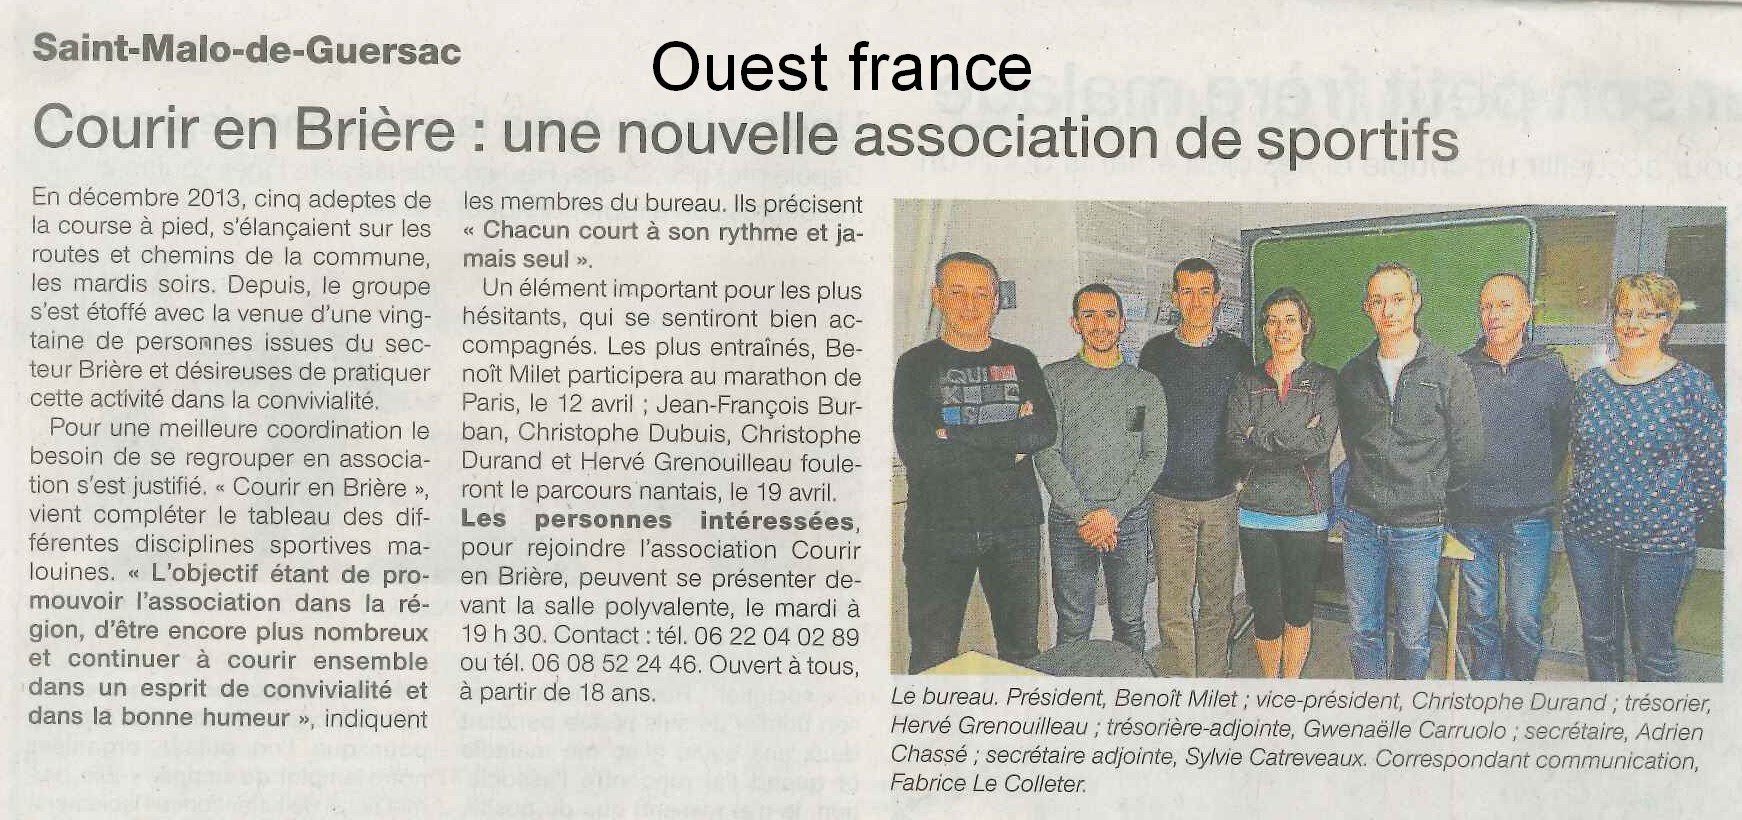 Ouest france 09042015